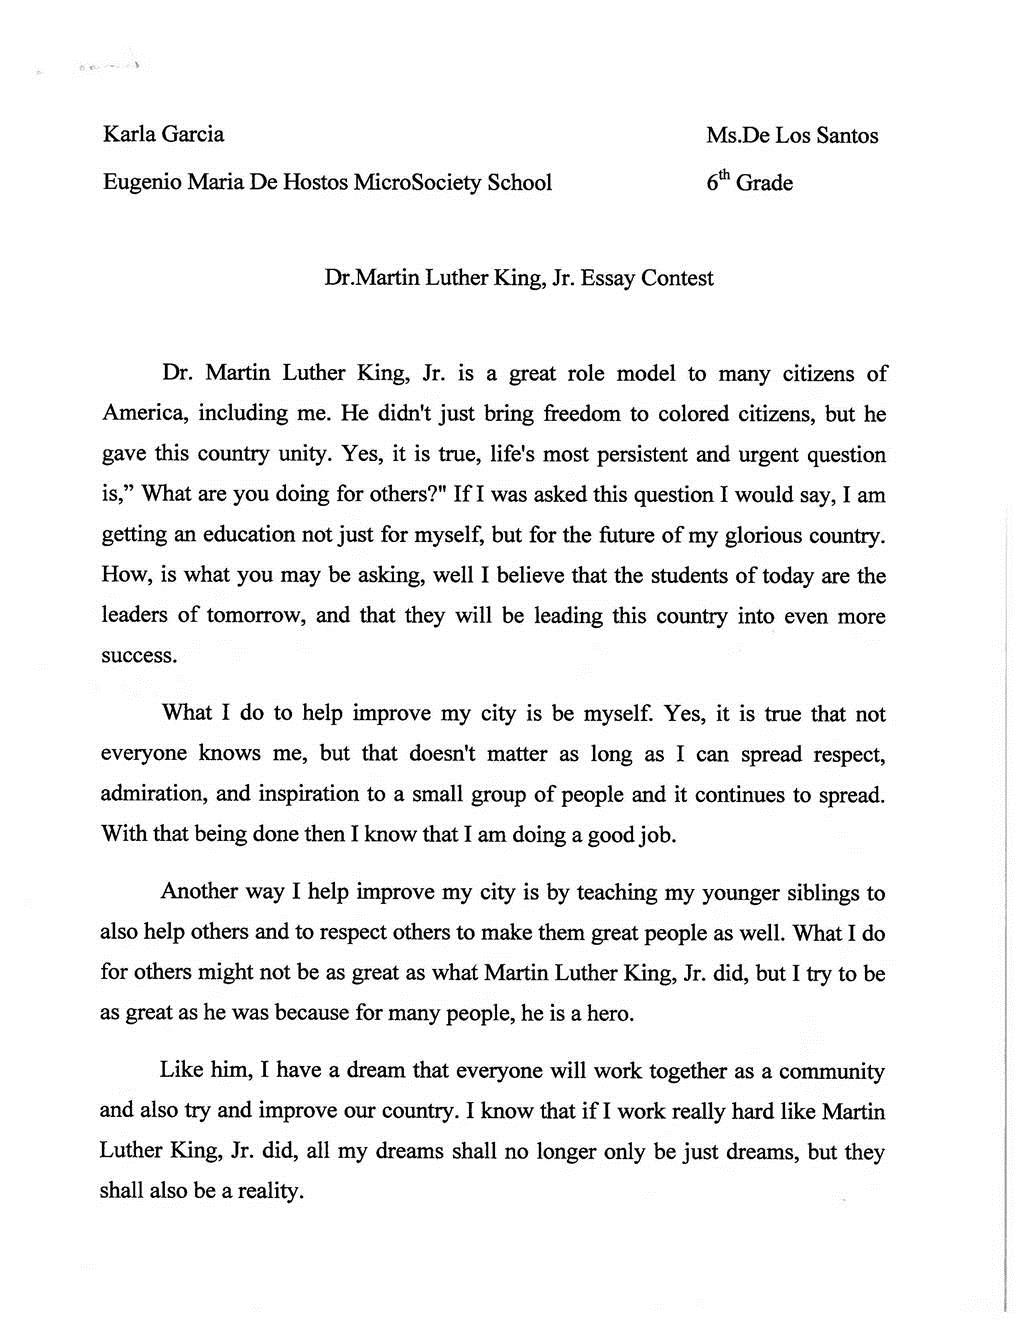 Martin luther king jr day essay